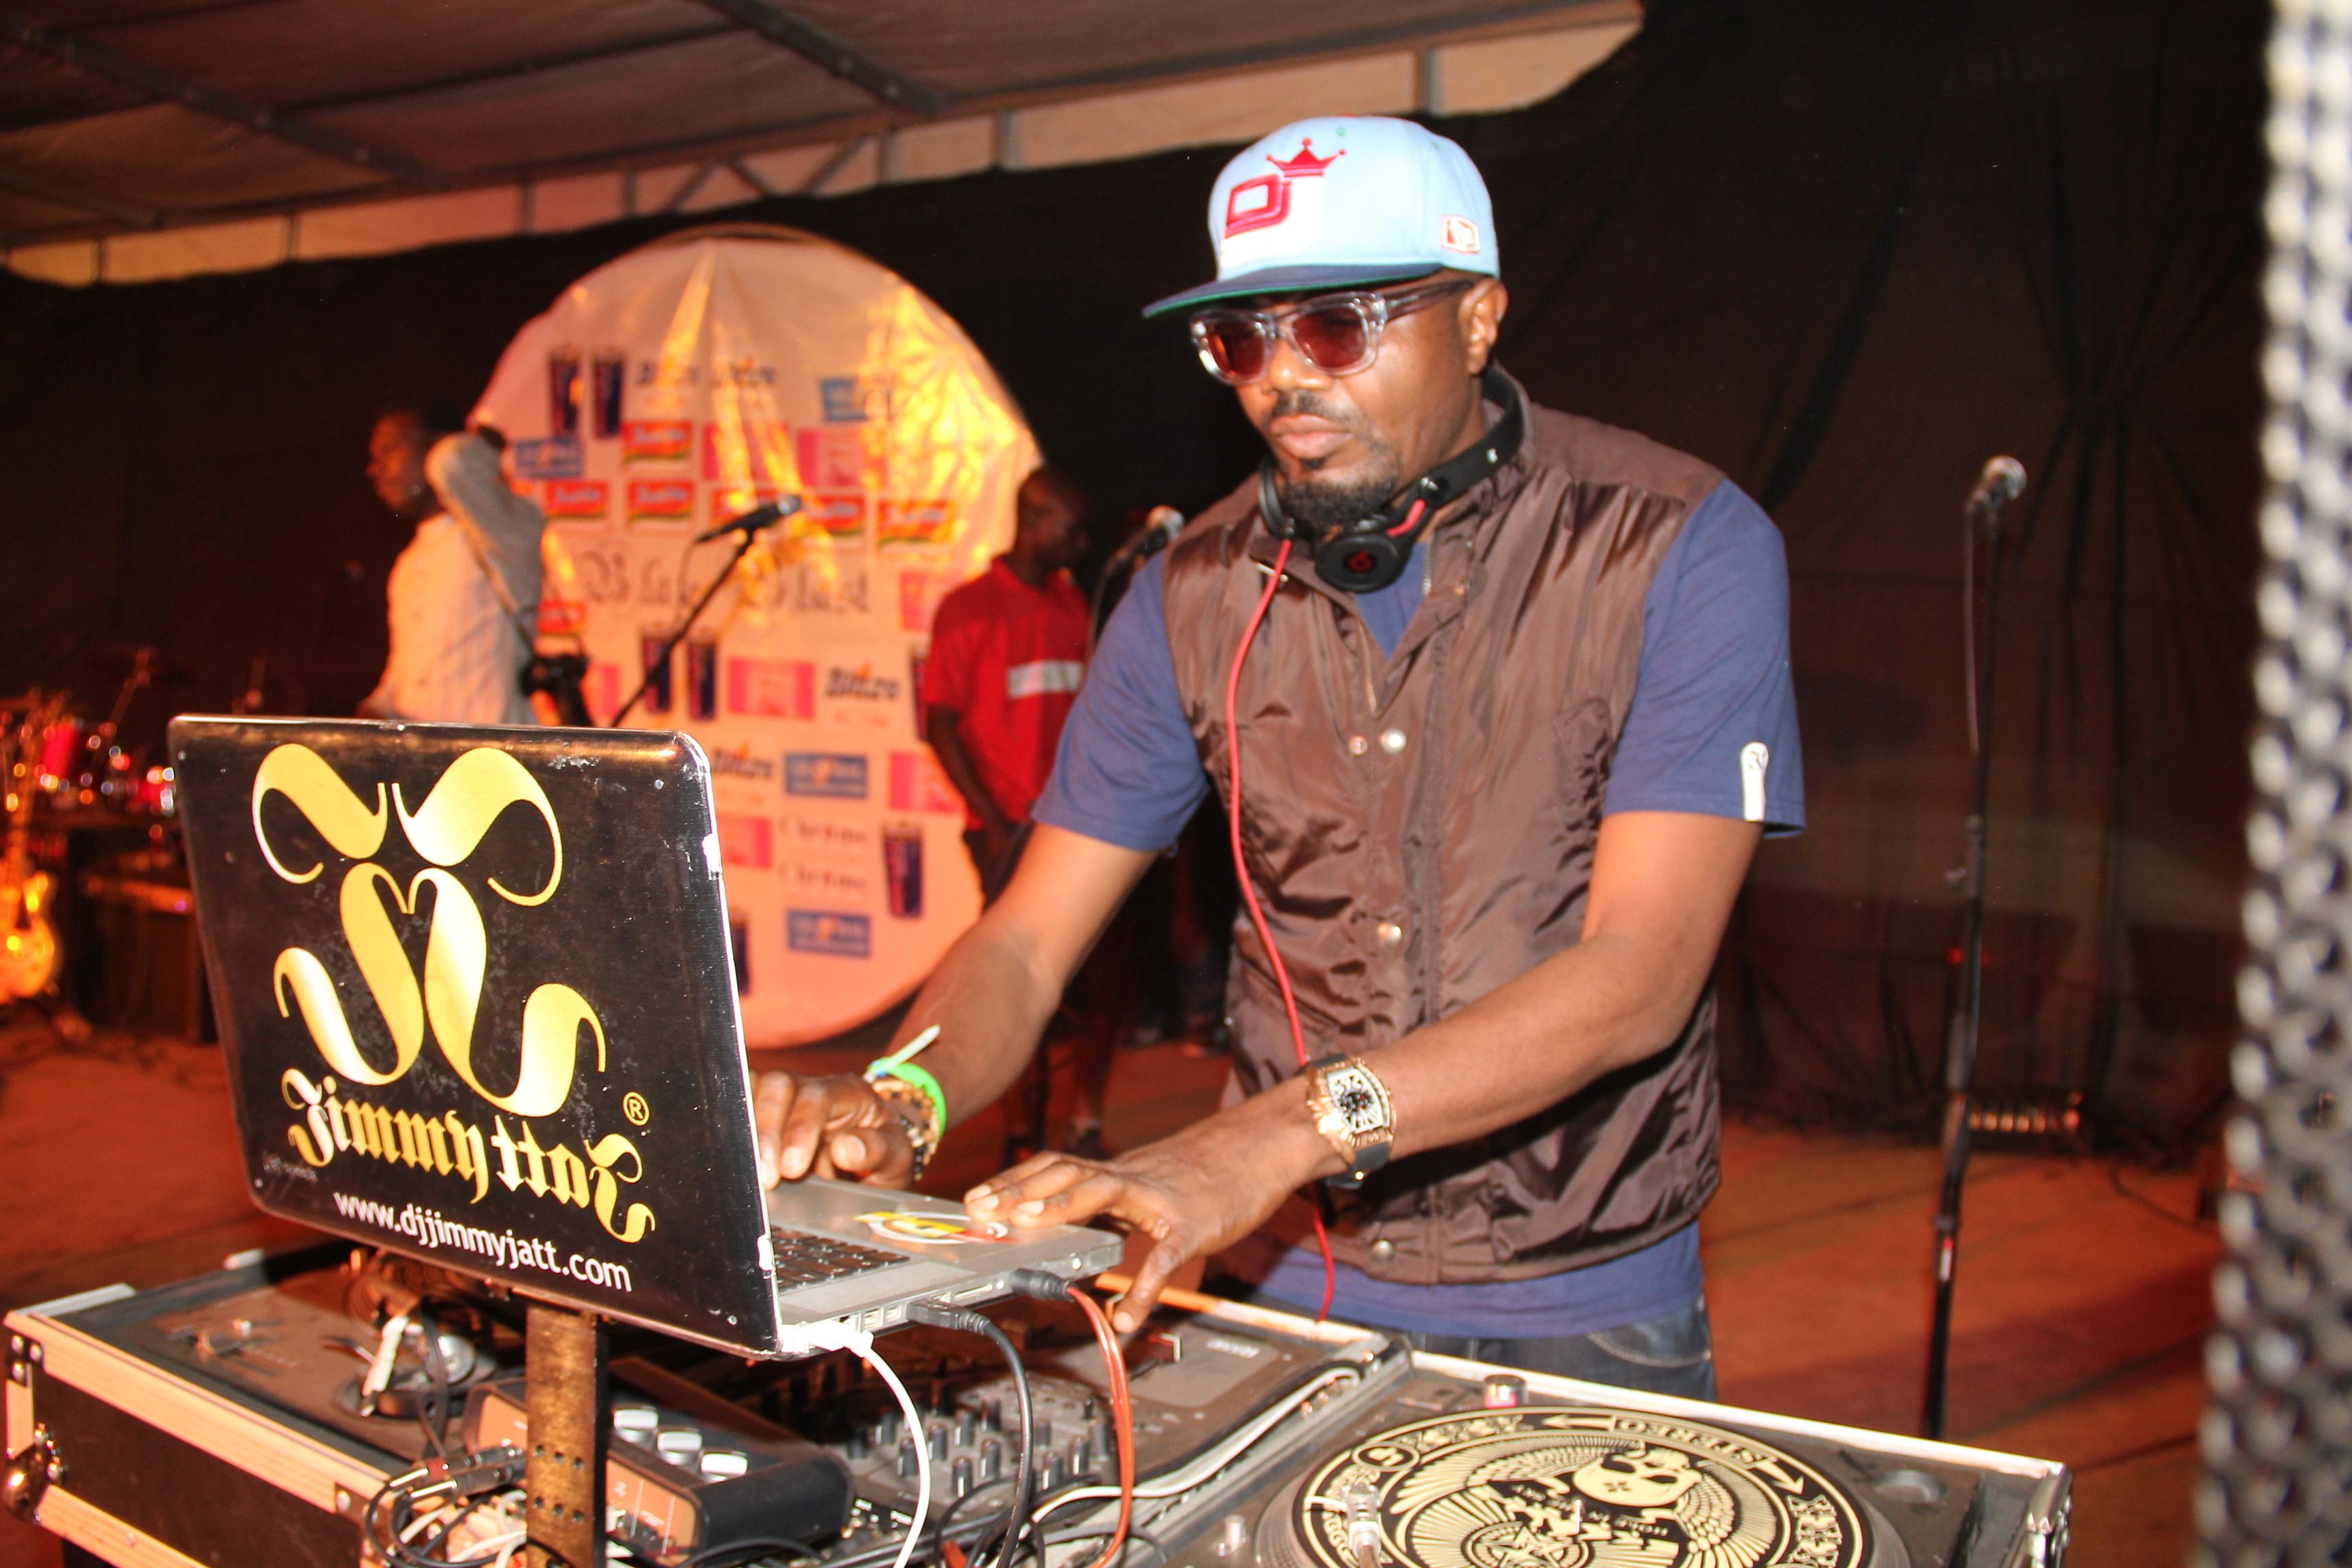 Jimmy Jatt on the ones and twos